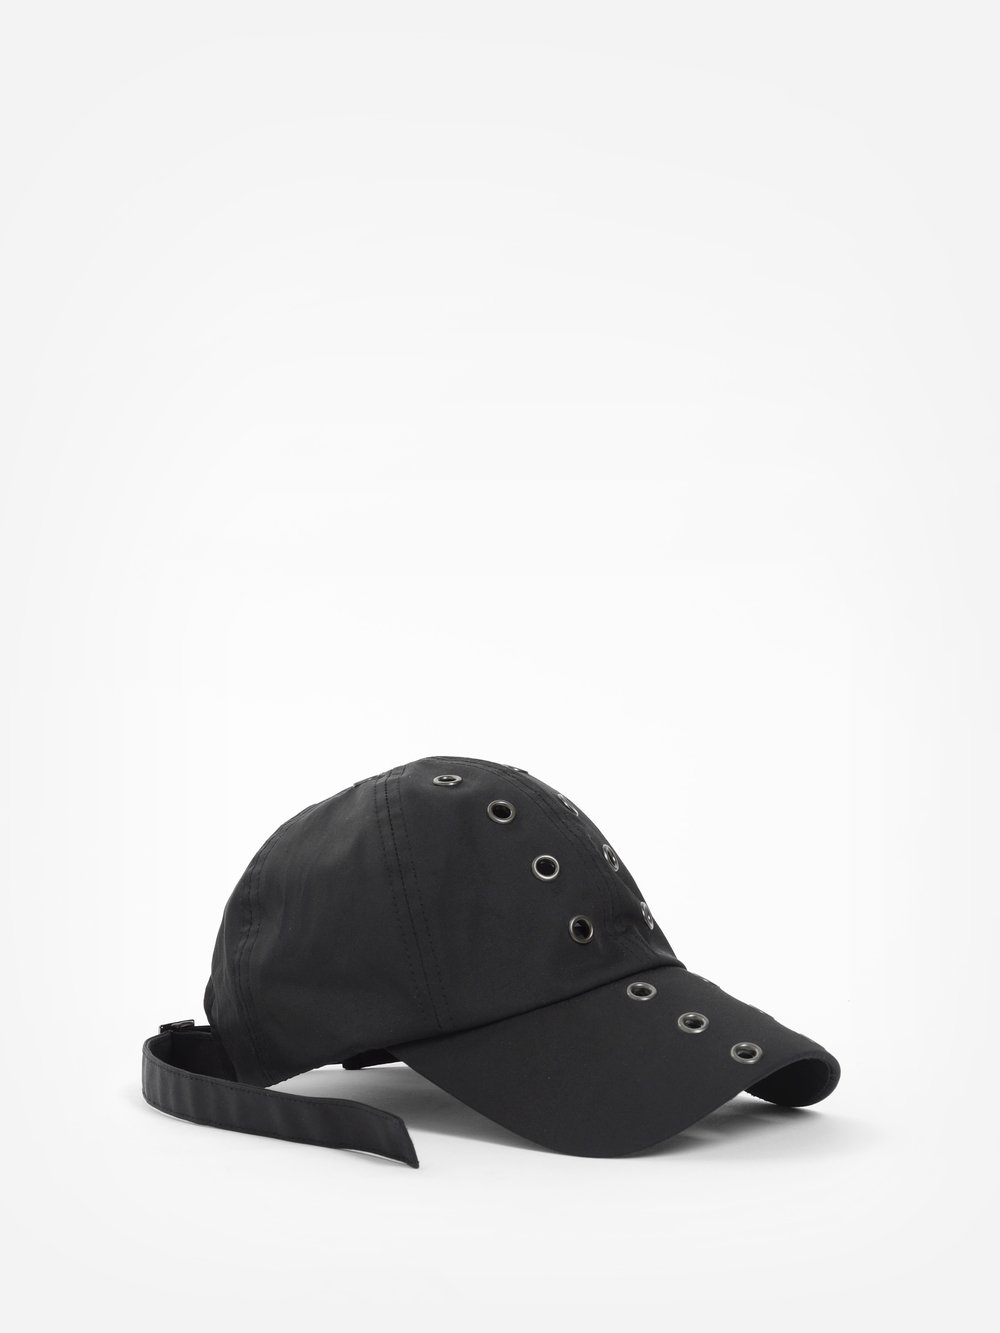 D.GNAK BY KANG.D MEN'S BLACK EYELETS CAP